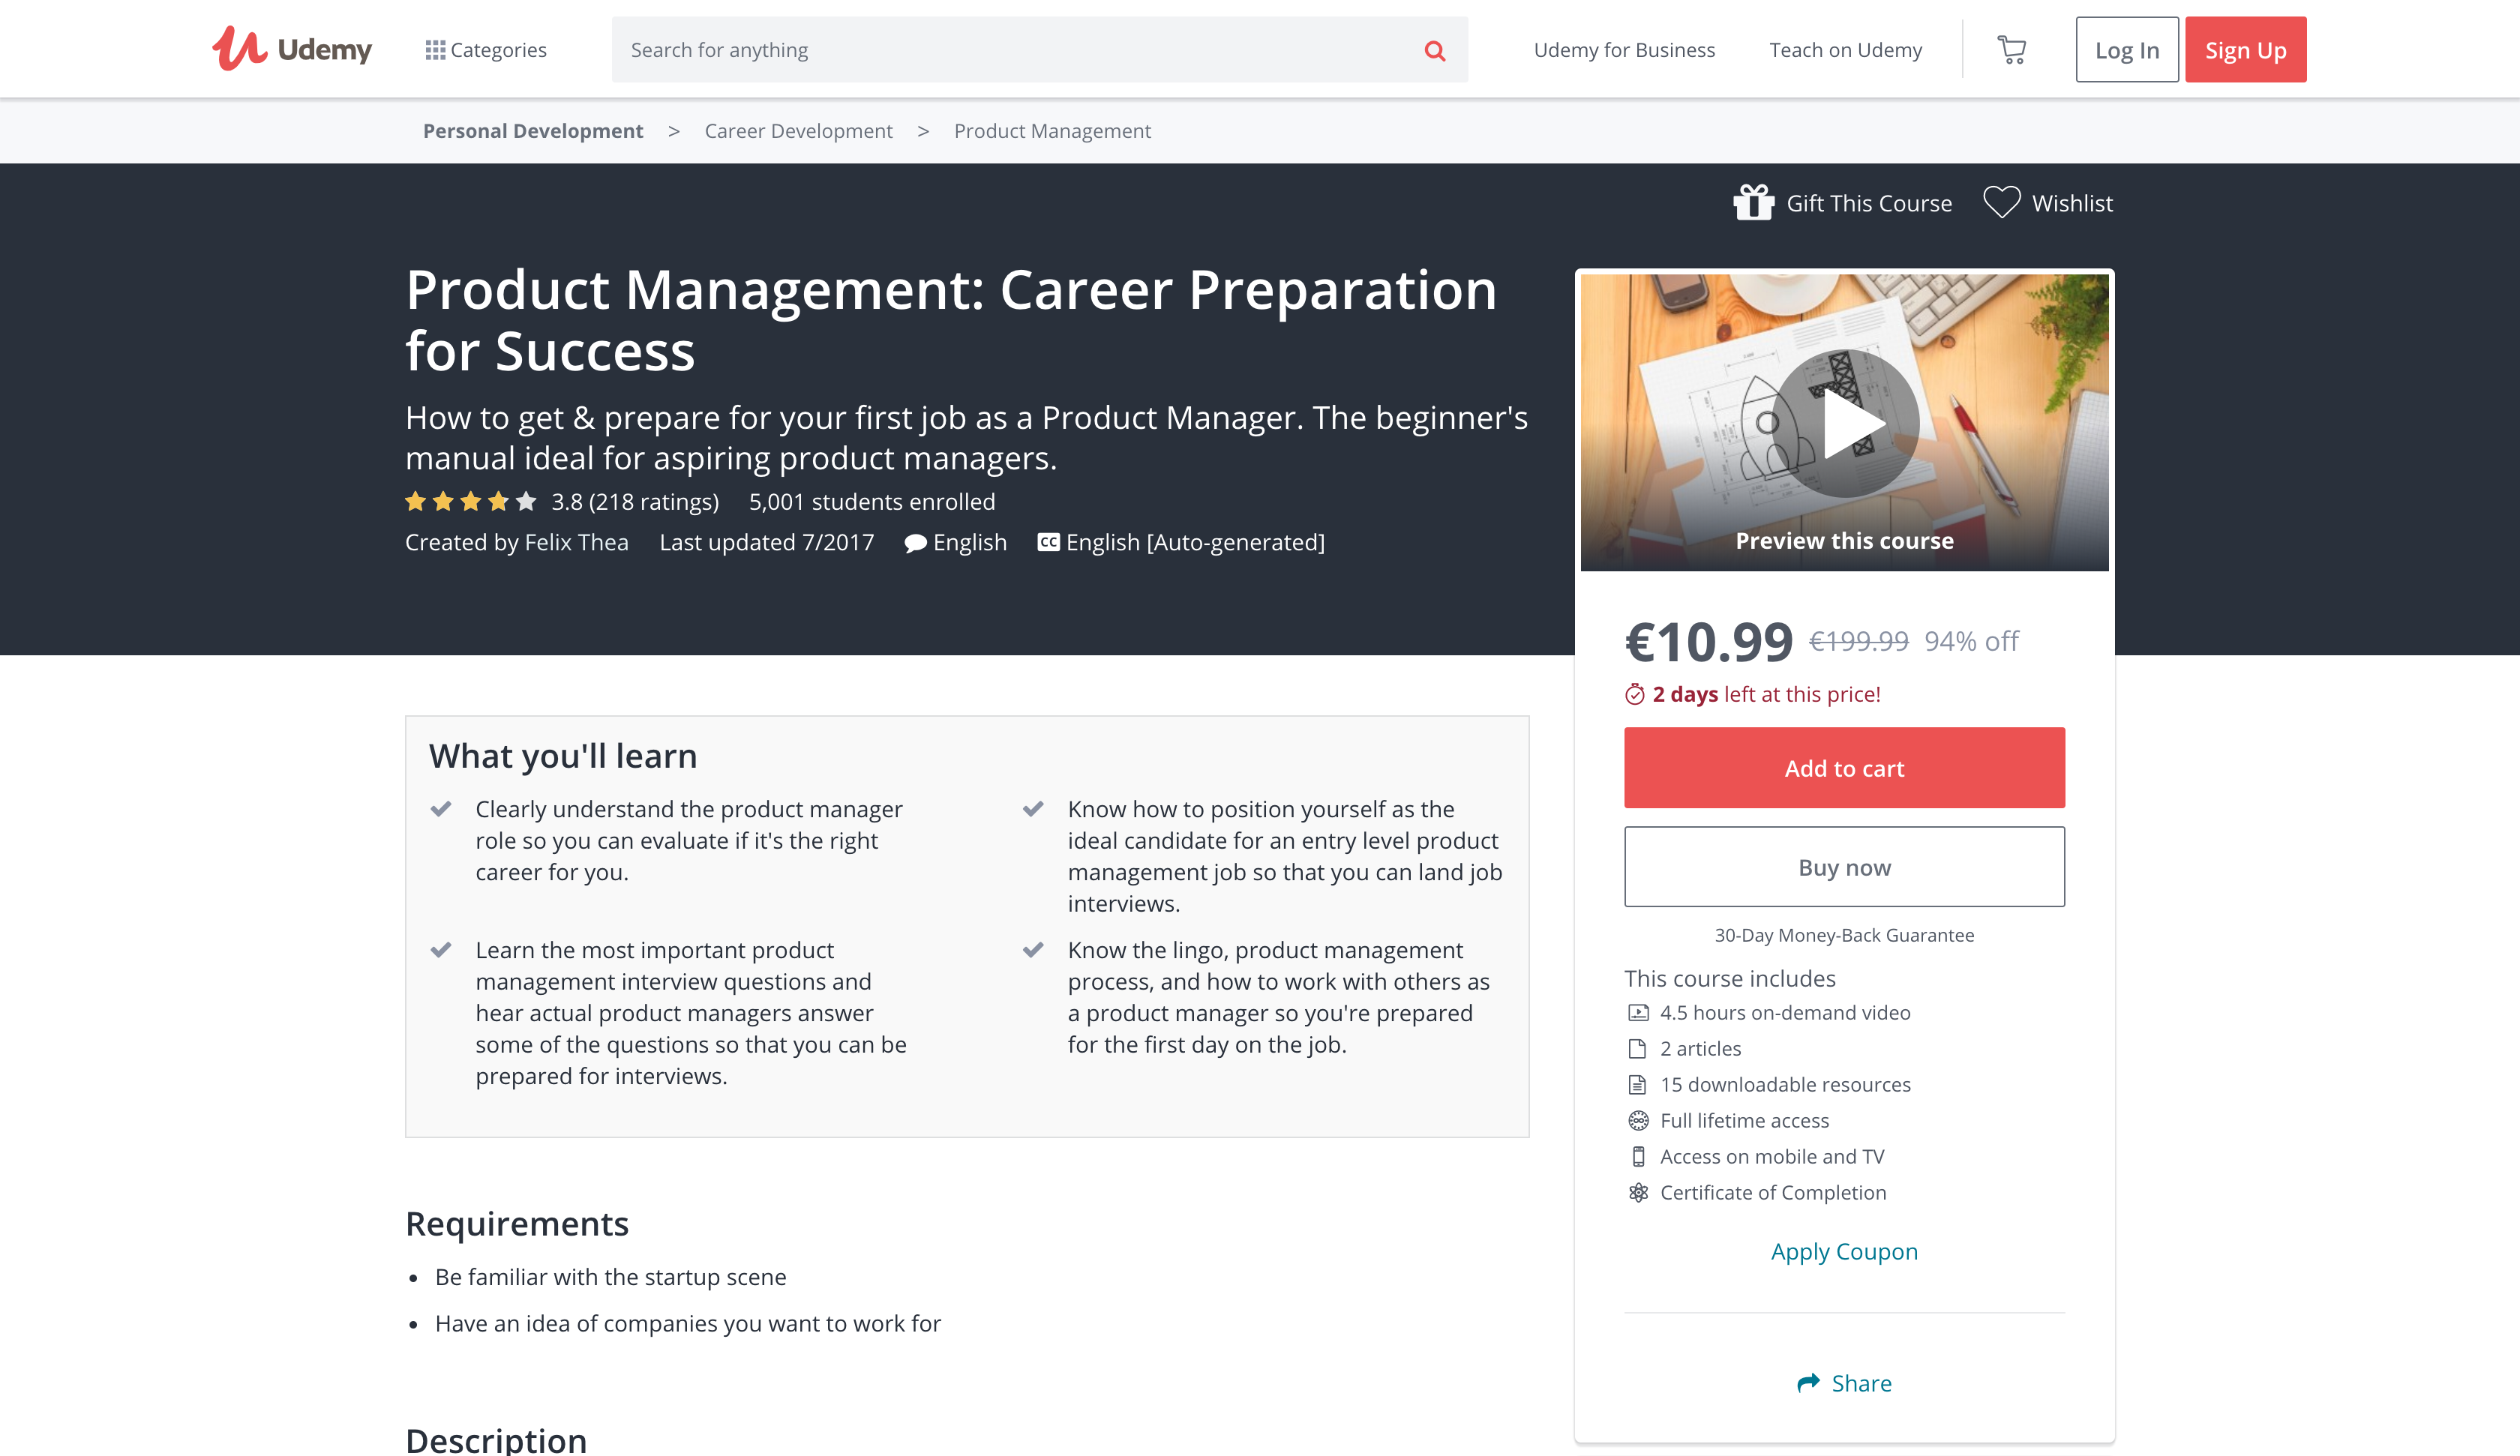 Product Management: Career Preparation for Success (Udemy)